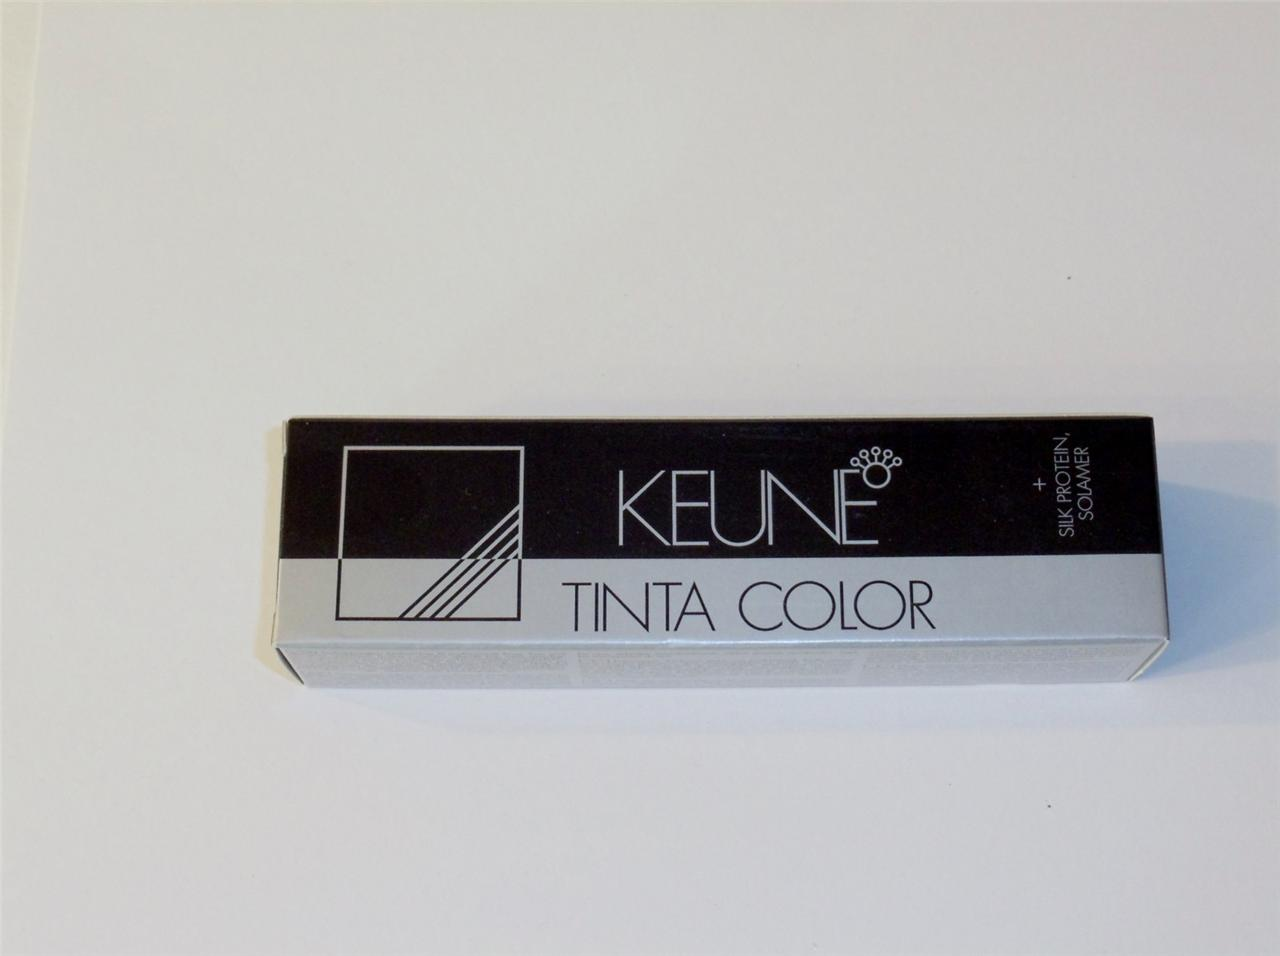 Keune Tinta Permanent Hair Color Level 7.44-Medium Intense Copper